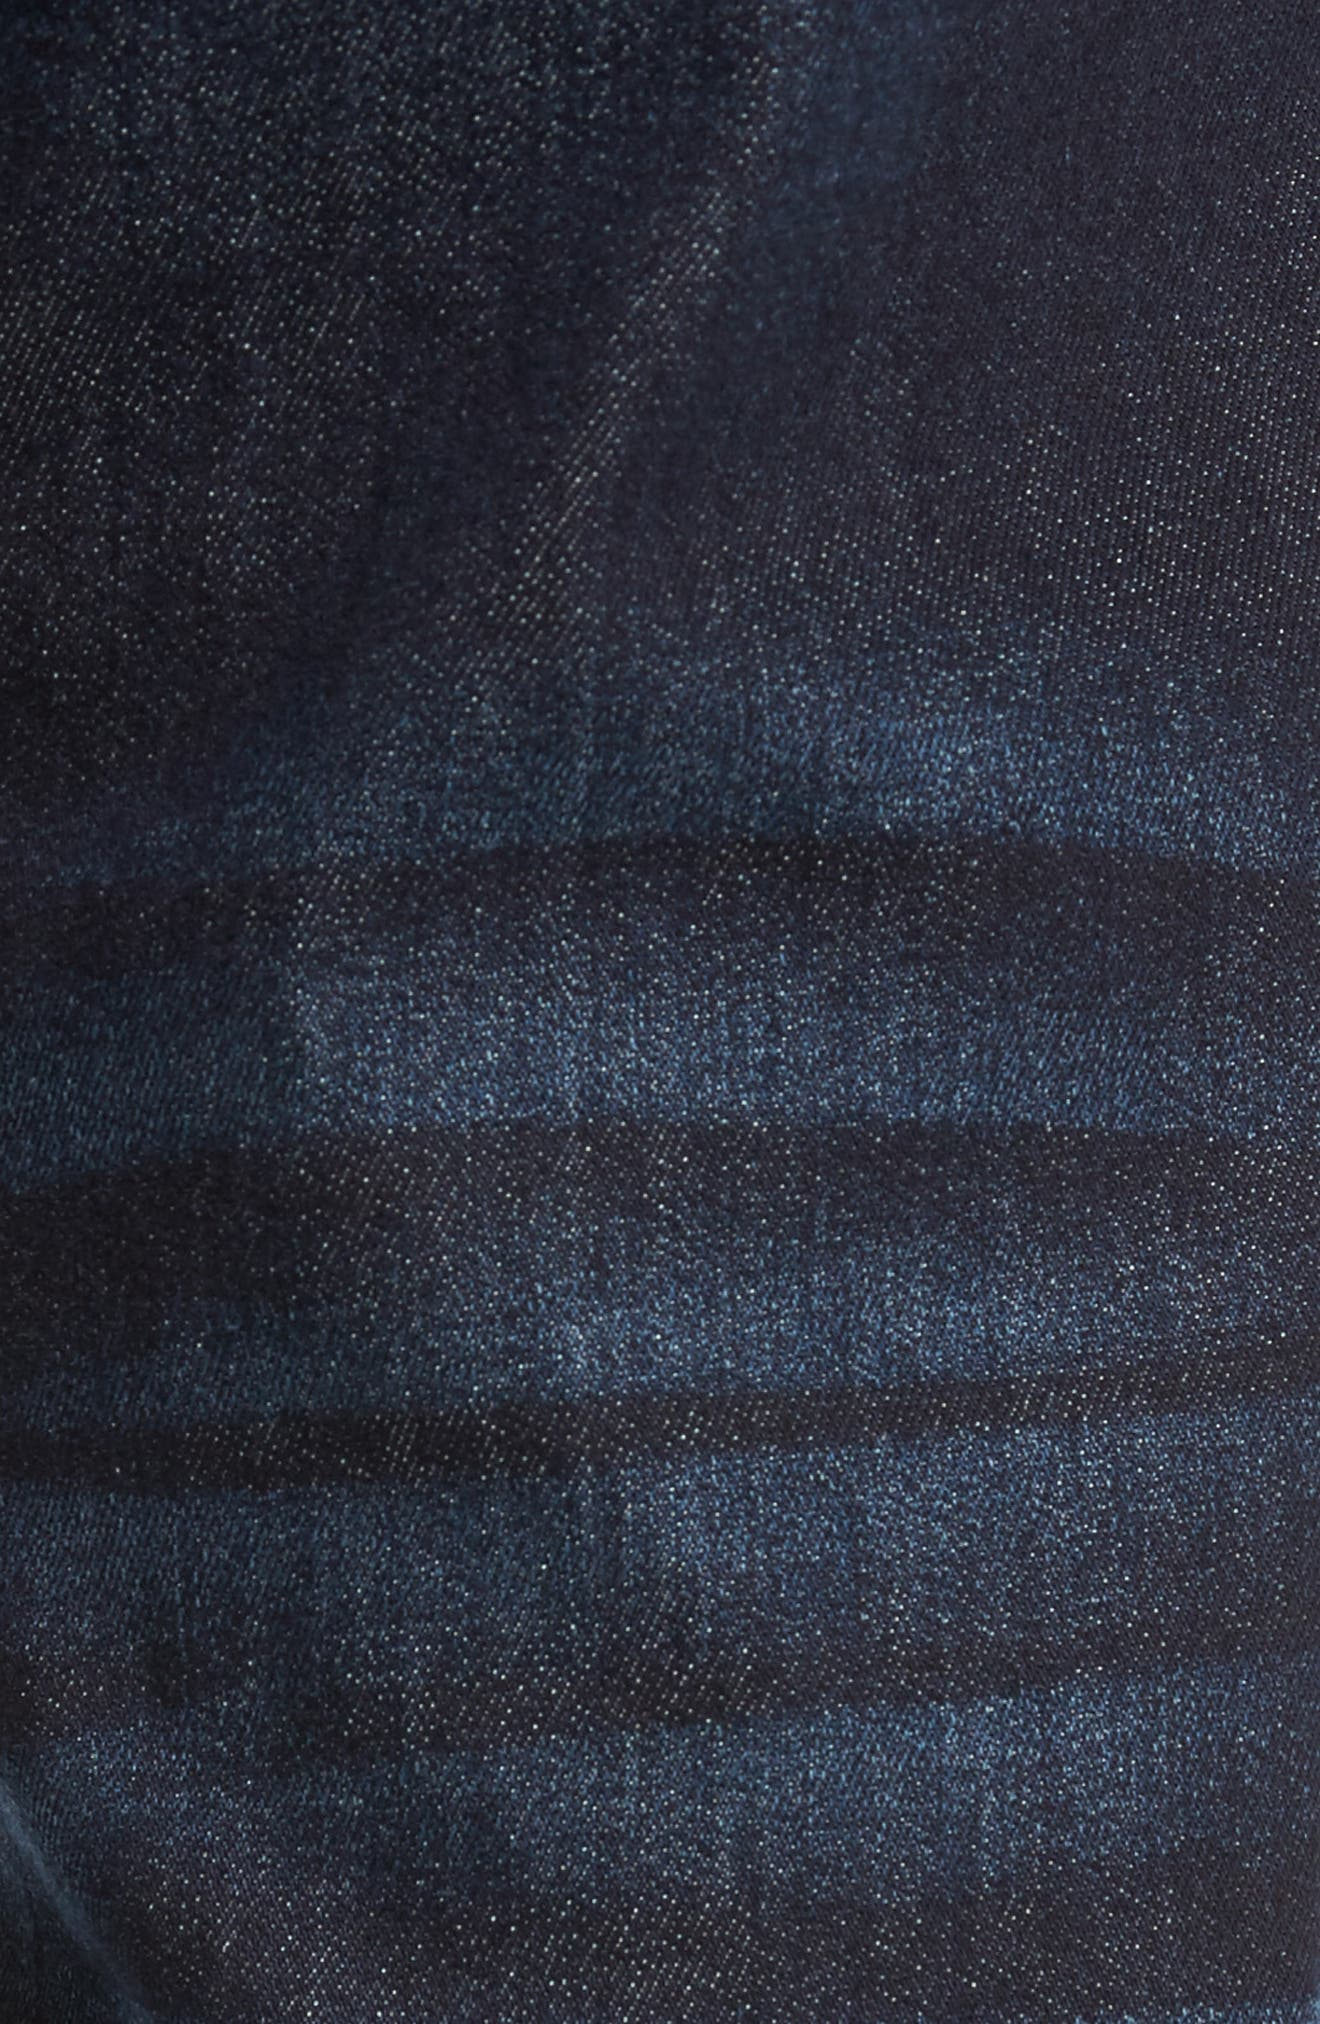 Rocco Skinny Fit Jeans,                             Alternate thumbnail 5, color,                             Dark Indigo Luxe